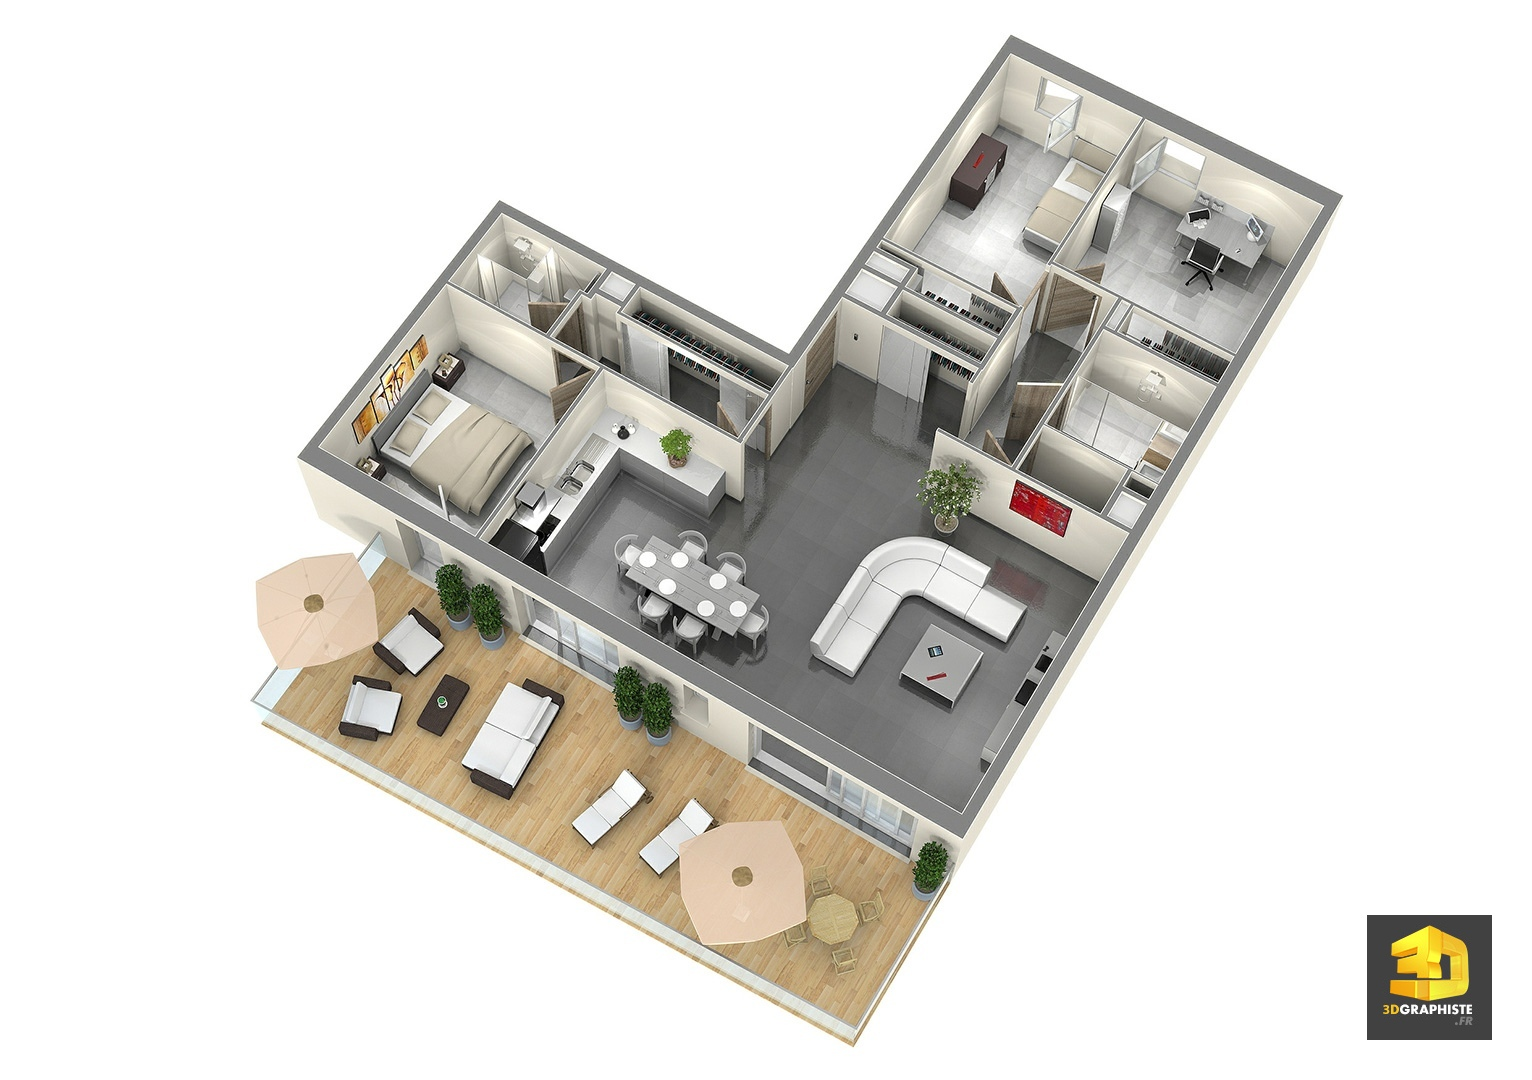 Plan de vente une illustration d 39 architecture 3d for Plan d architecture